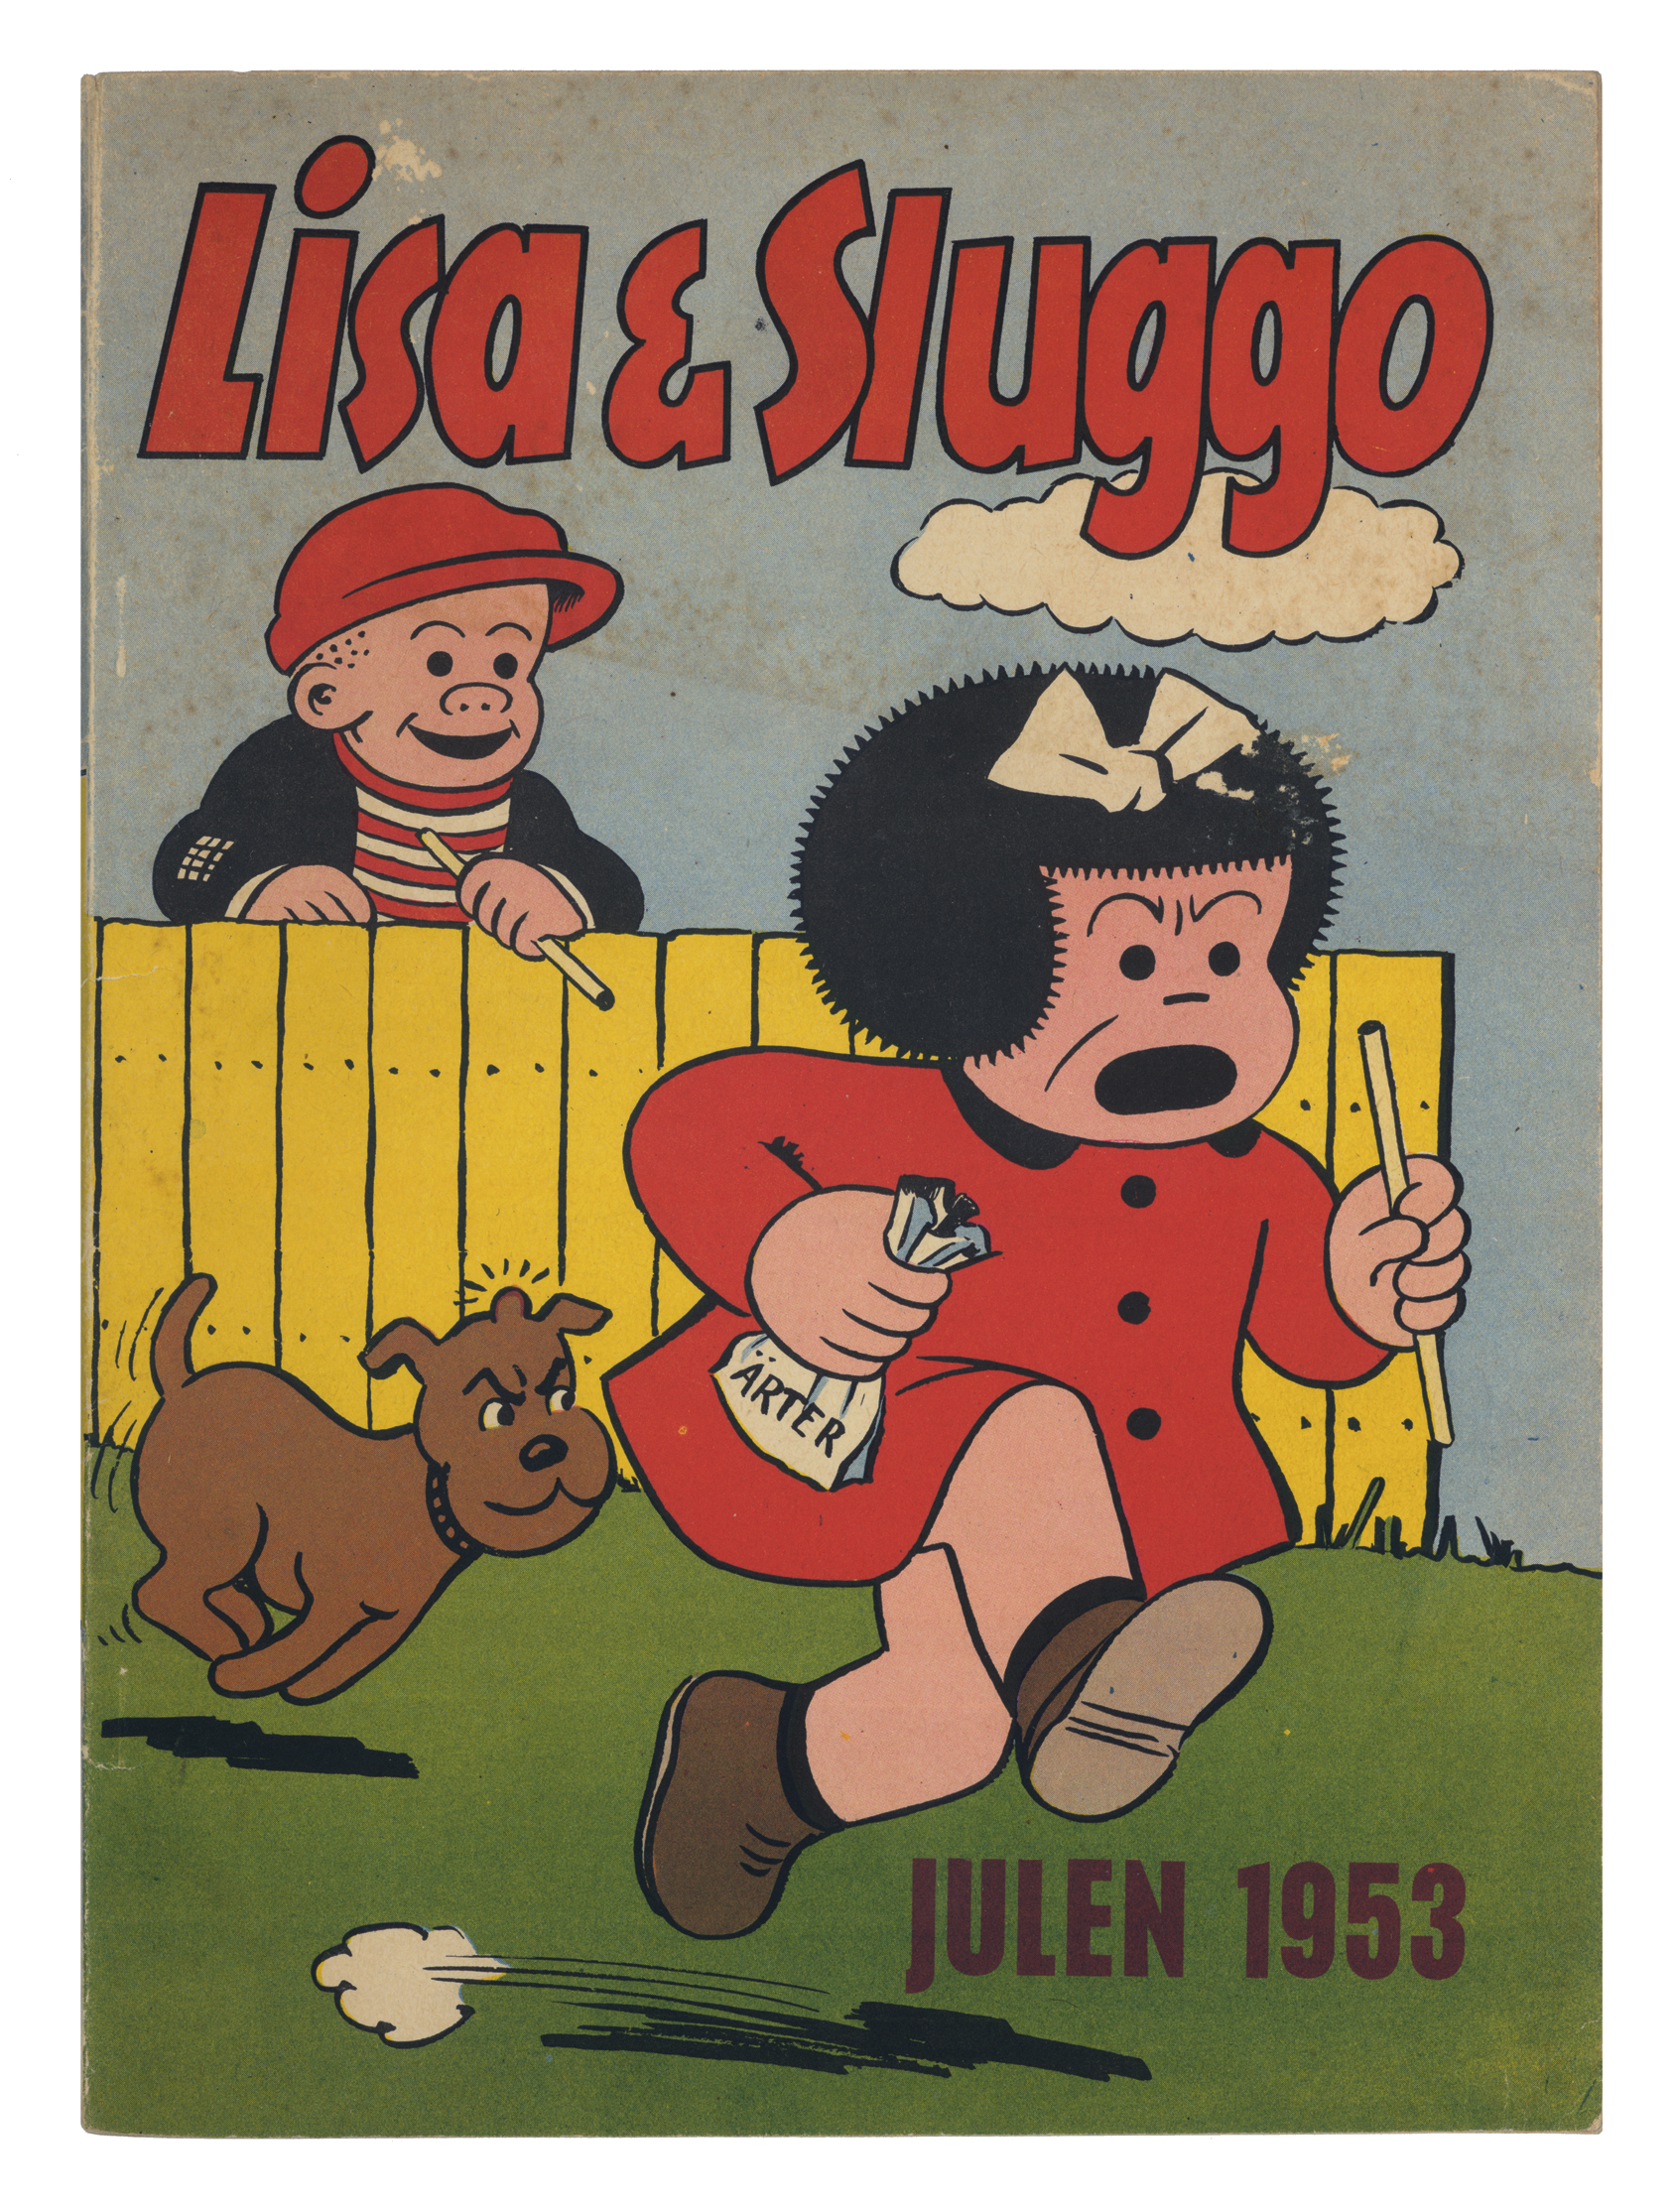 A 1953 Swedish comic book cover (click to enlarge)